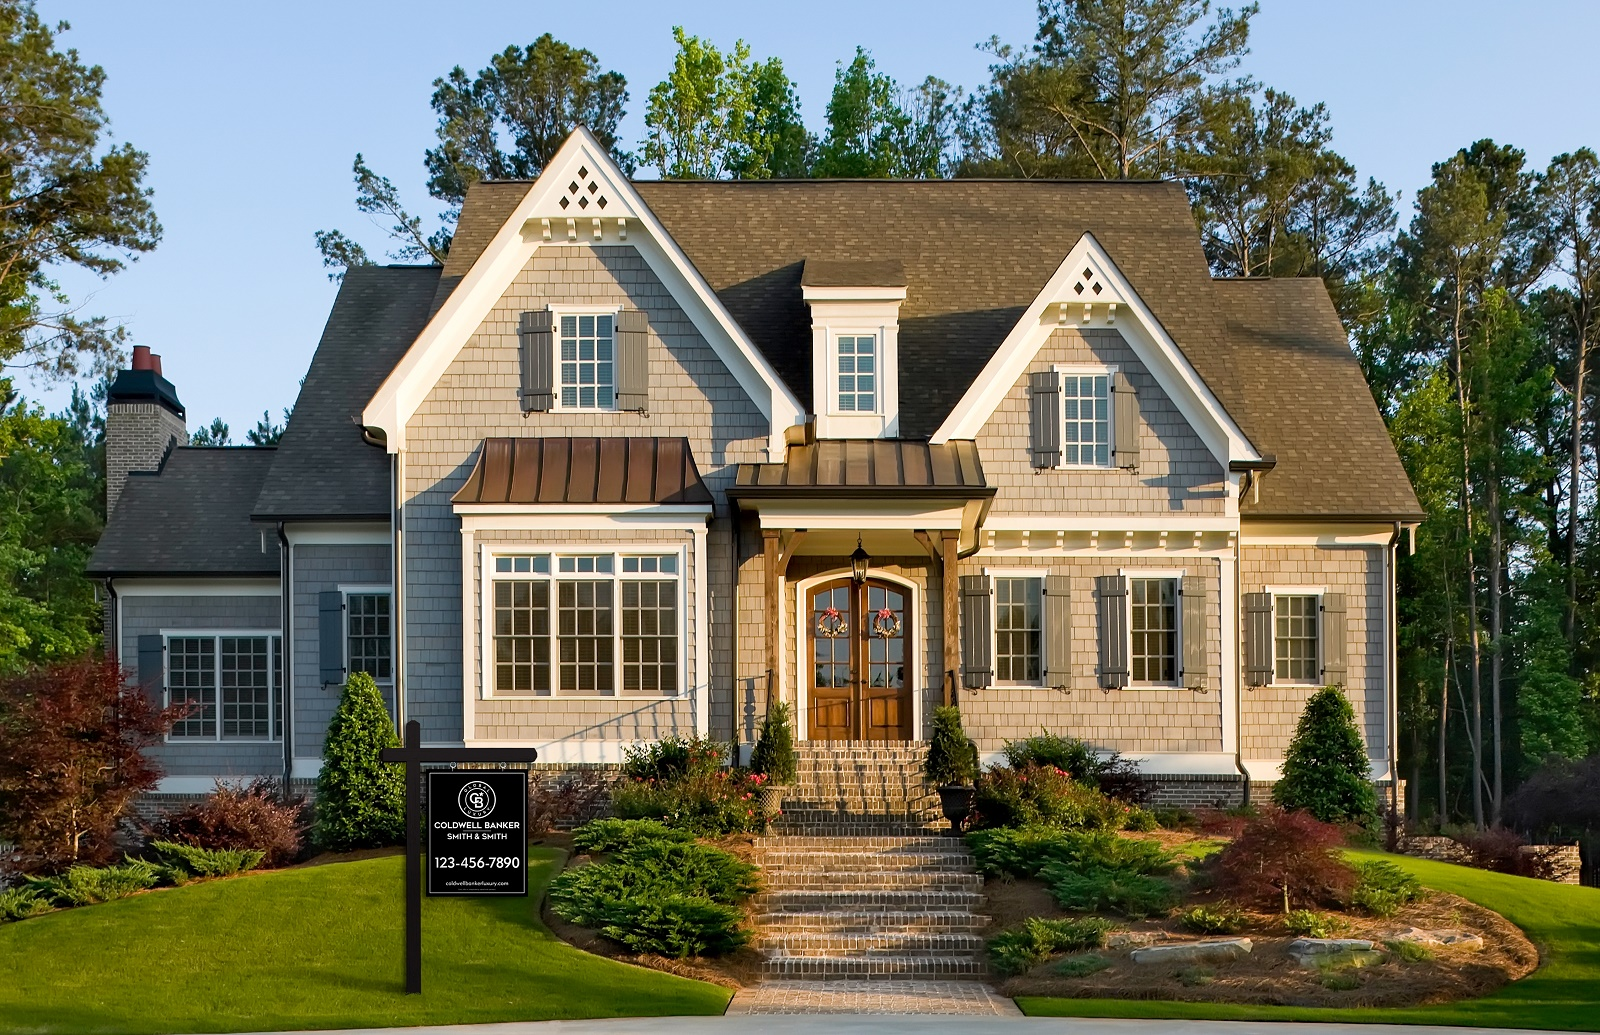 Madison Parade of Homes Over the Years